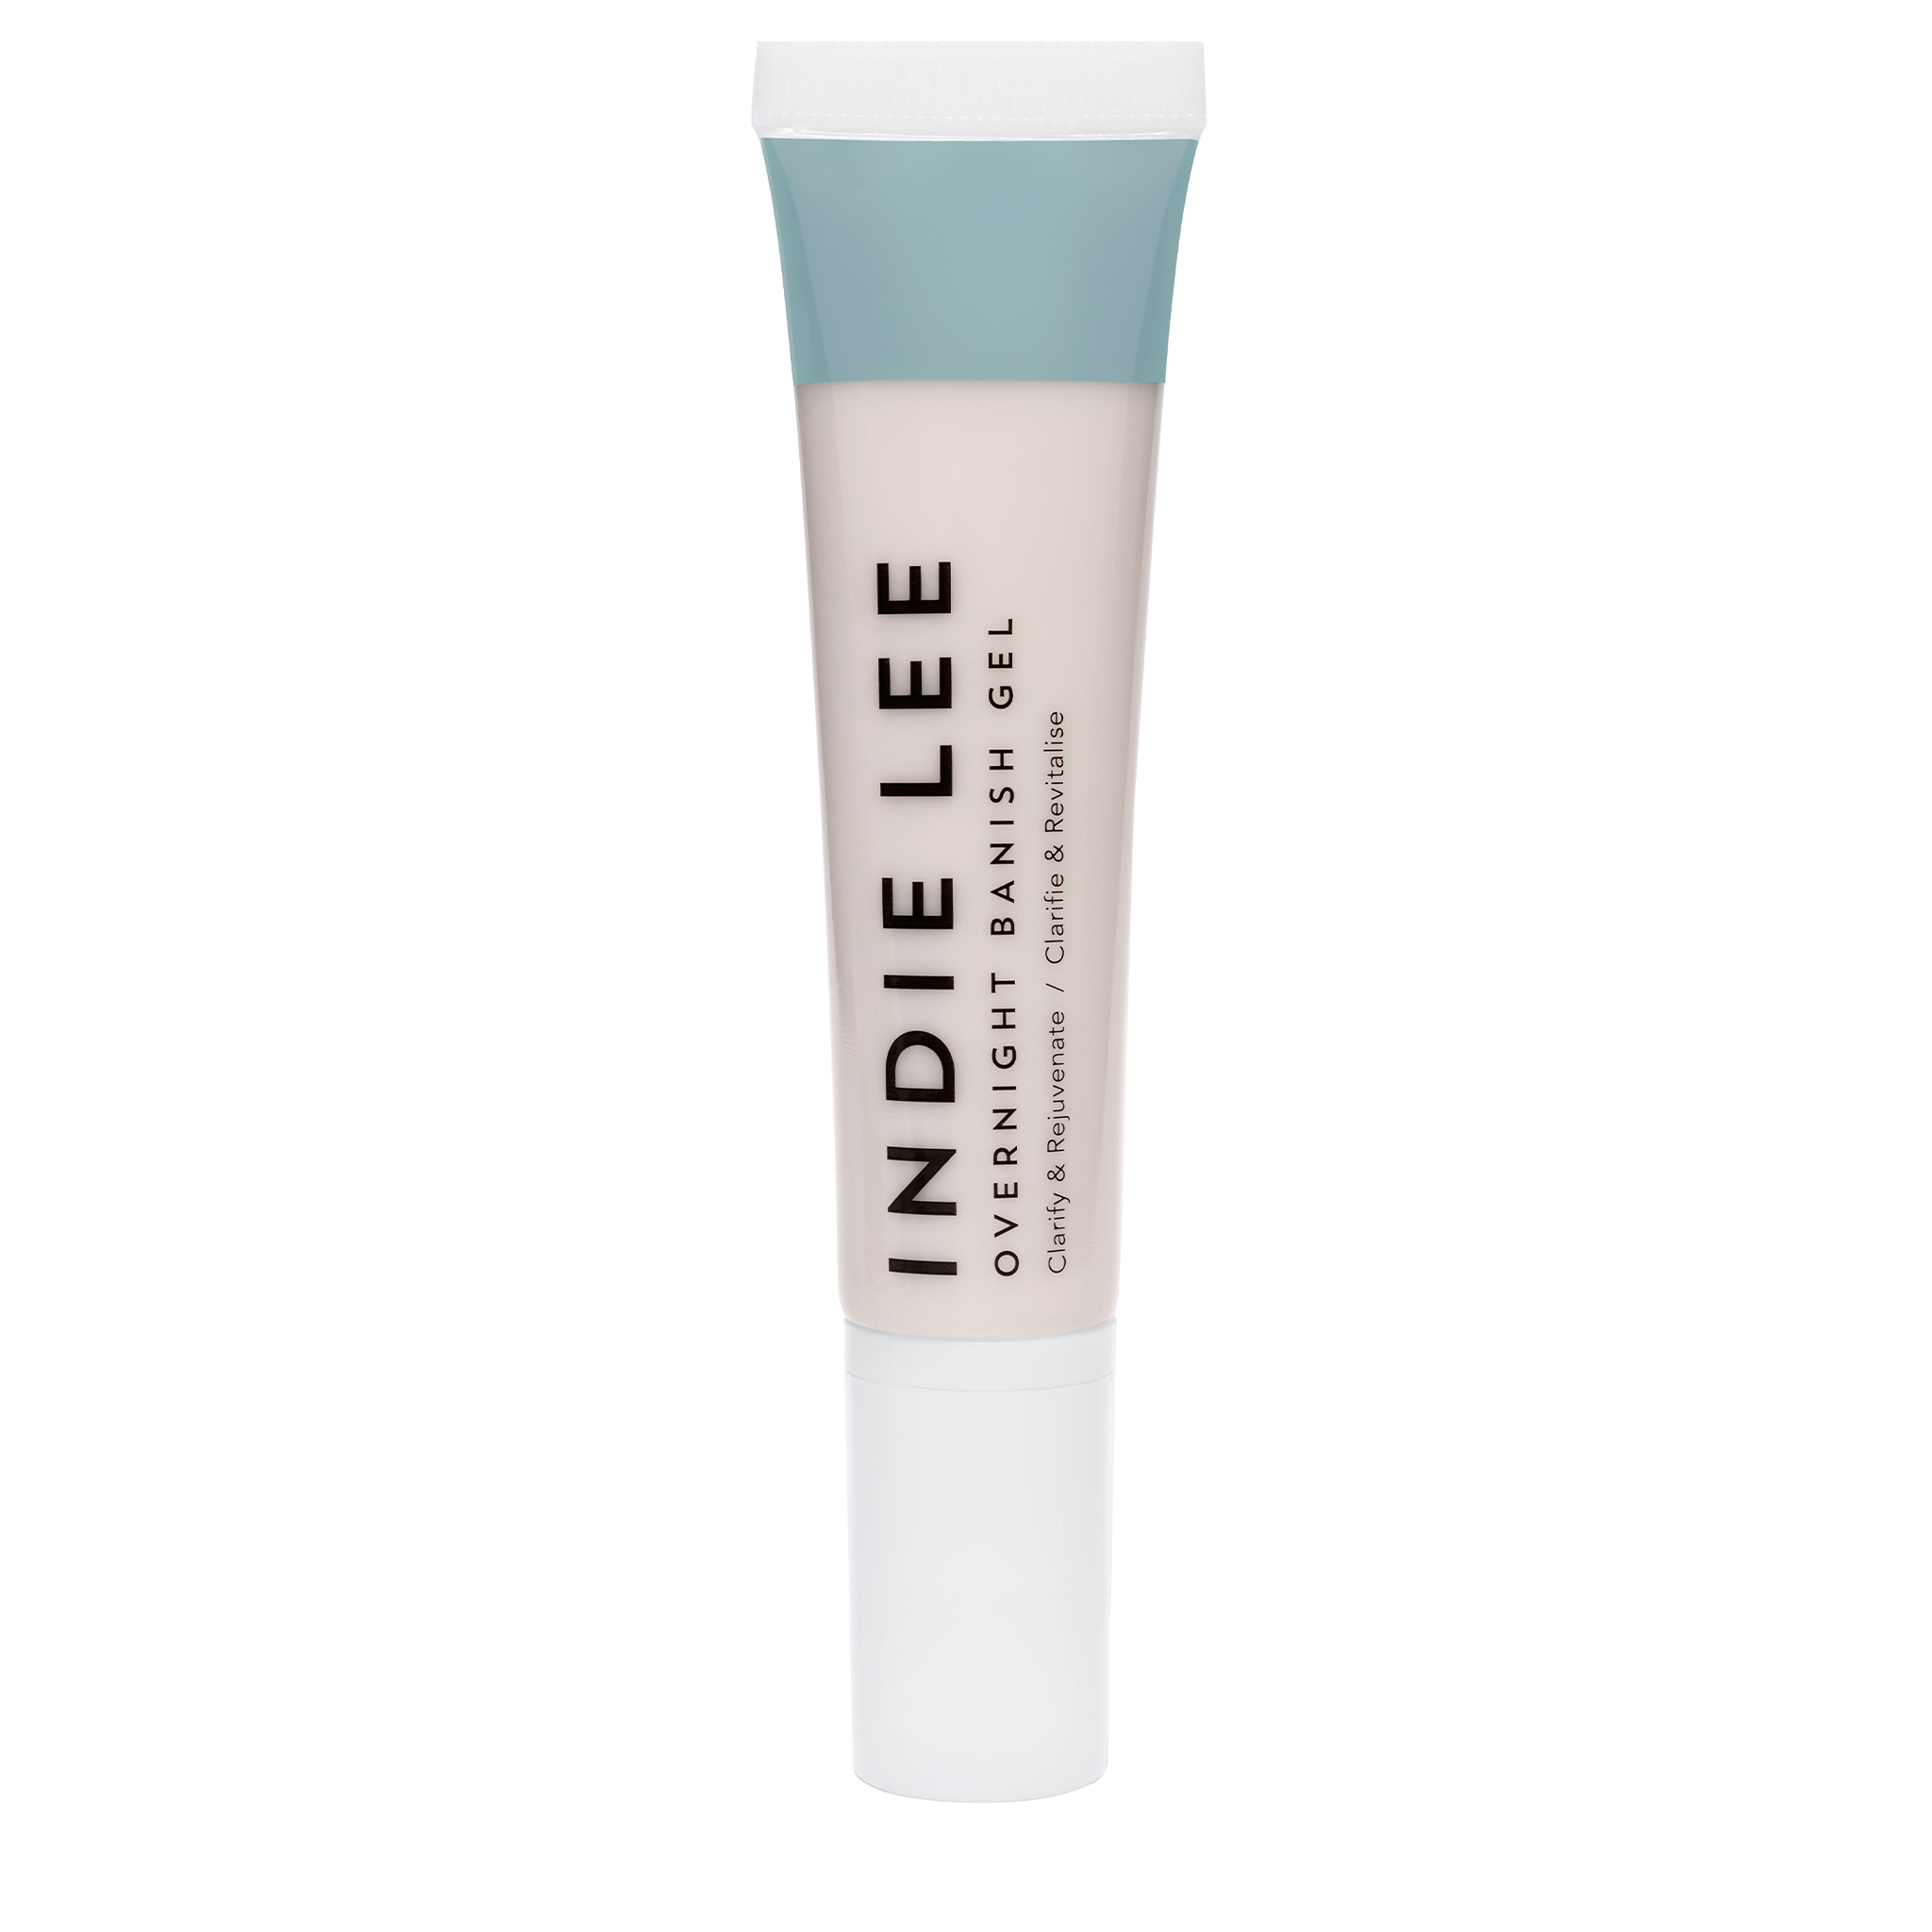 Indie Lee - Overnight Banish Gel